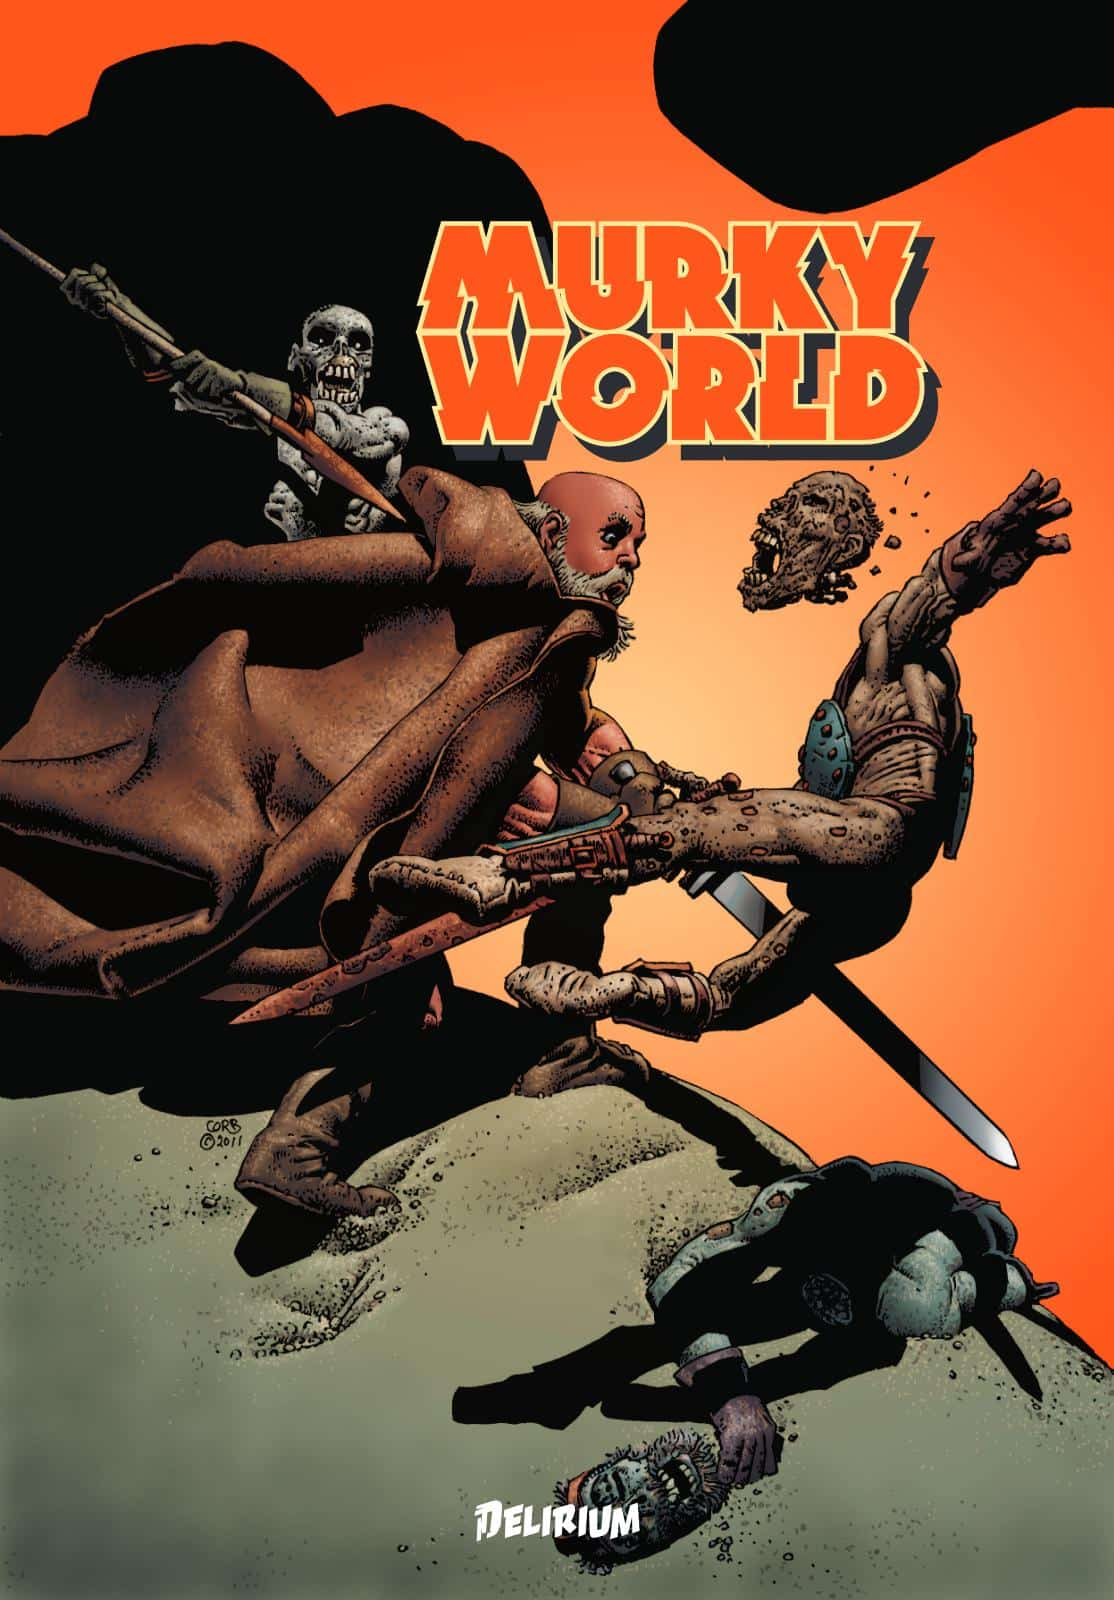 Murky World de Richard Corben en financement participatif sur KissKissBankBank